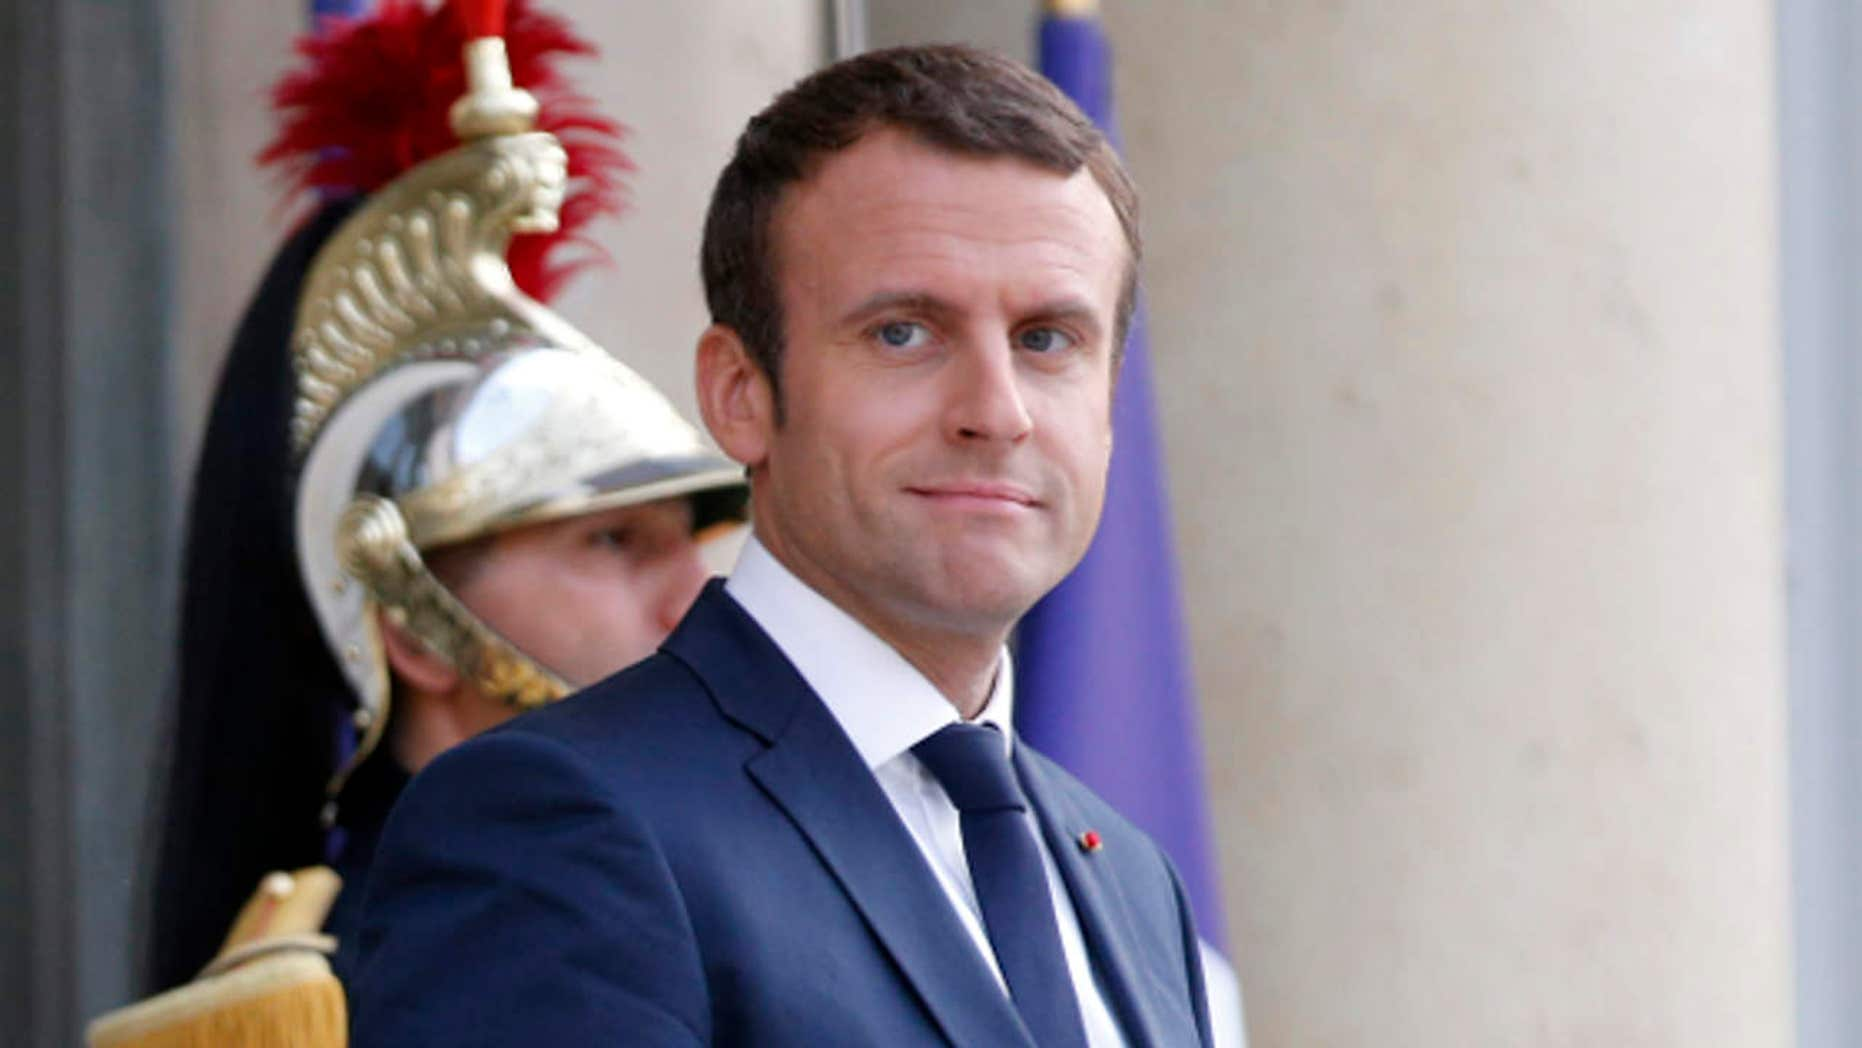 France's President Emmanuel Macron waits prior to welcoming Mexico's President Enrique Pena Nieto, for a dinner at the Elysee Palace, in Paris, Thursday, July 6, 2017.